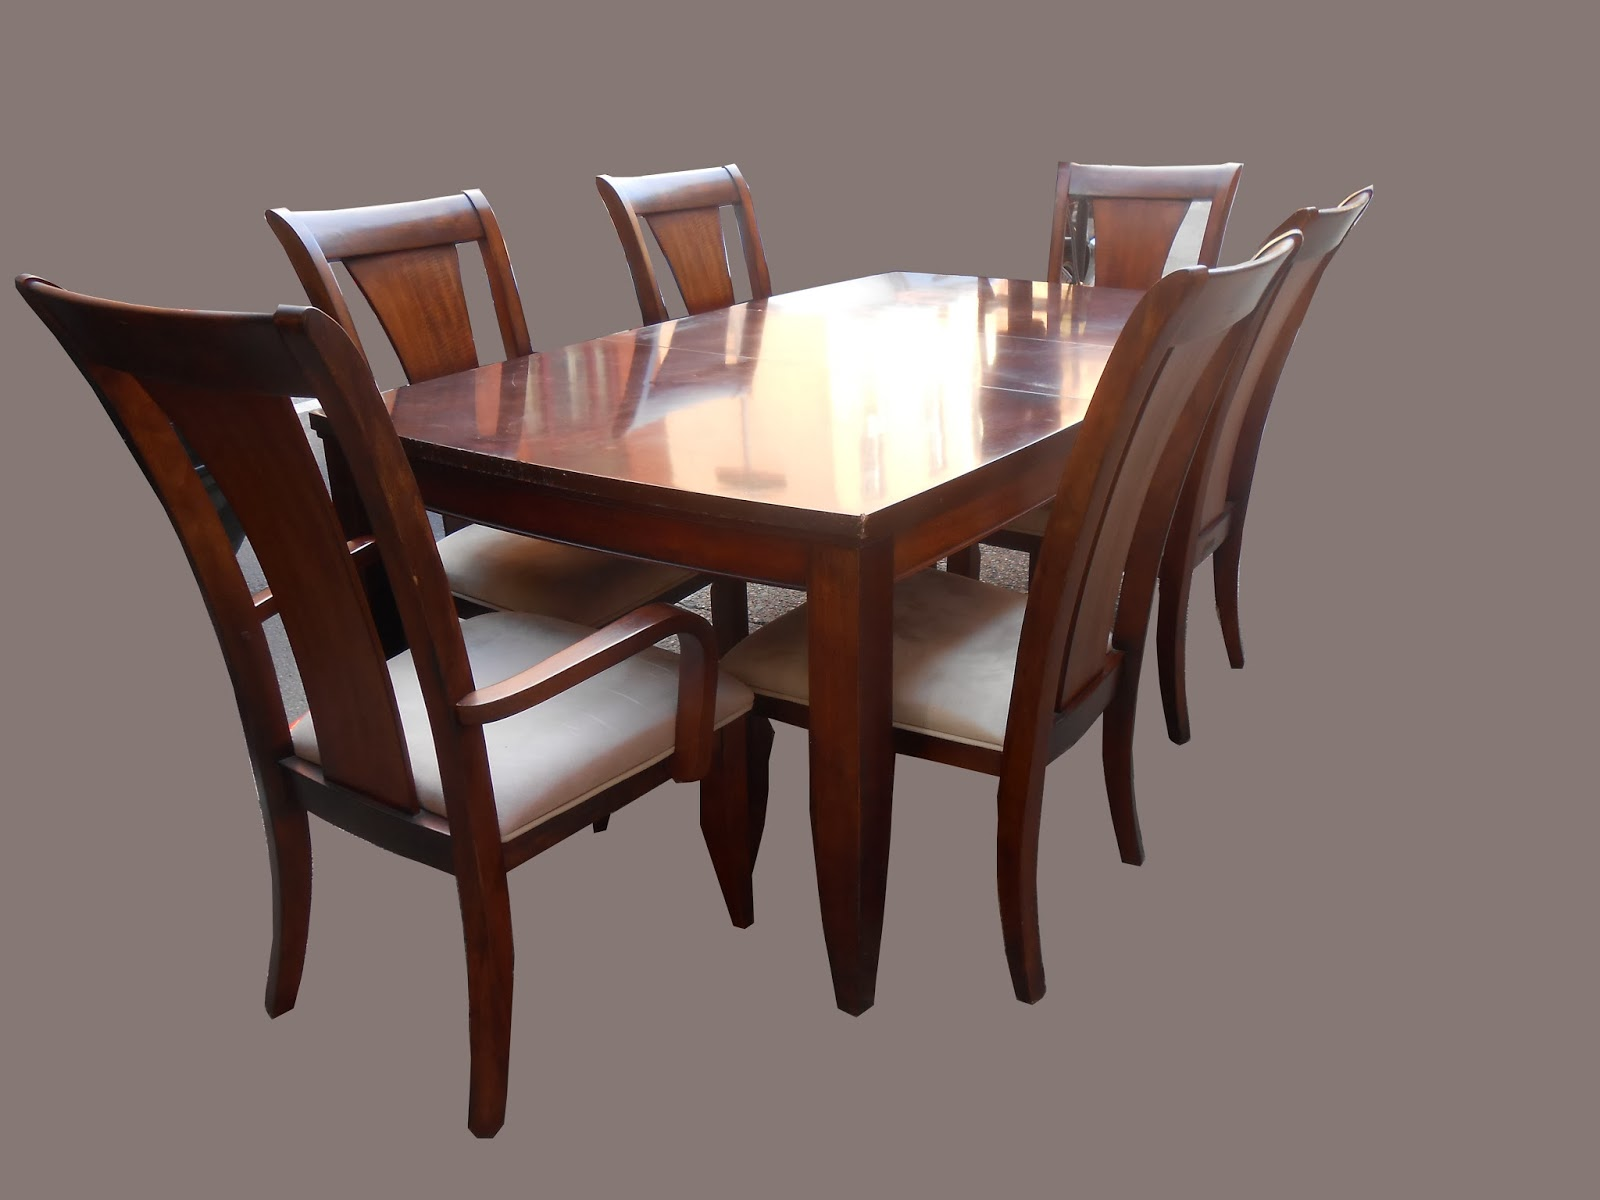 uhuru furniture collectibles mahogany dining table w 6. Black Bedroom Furniture Sets. Home Design Ideas